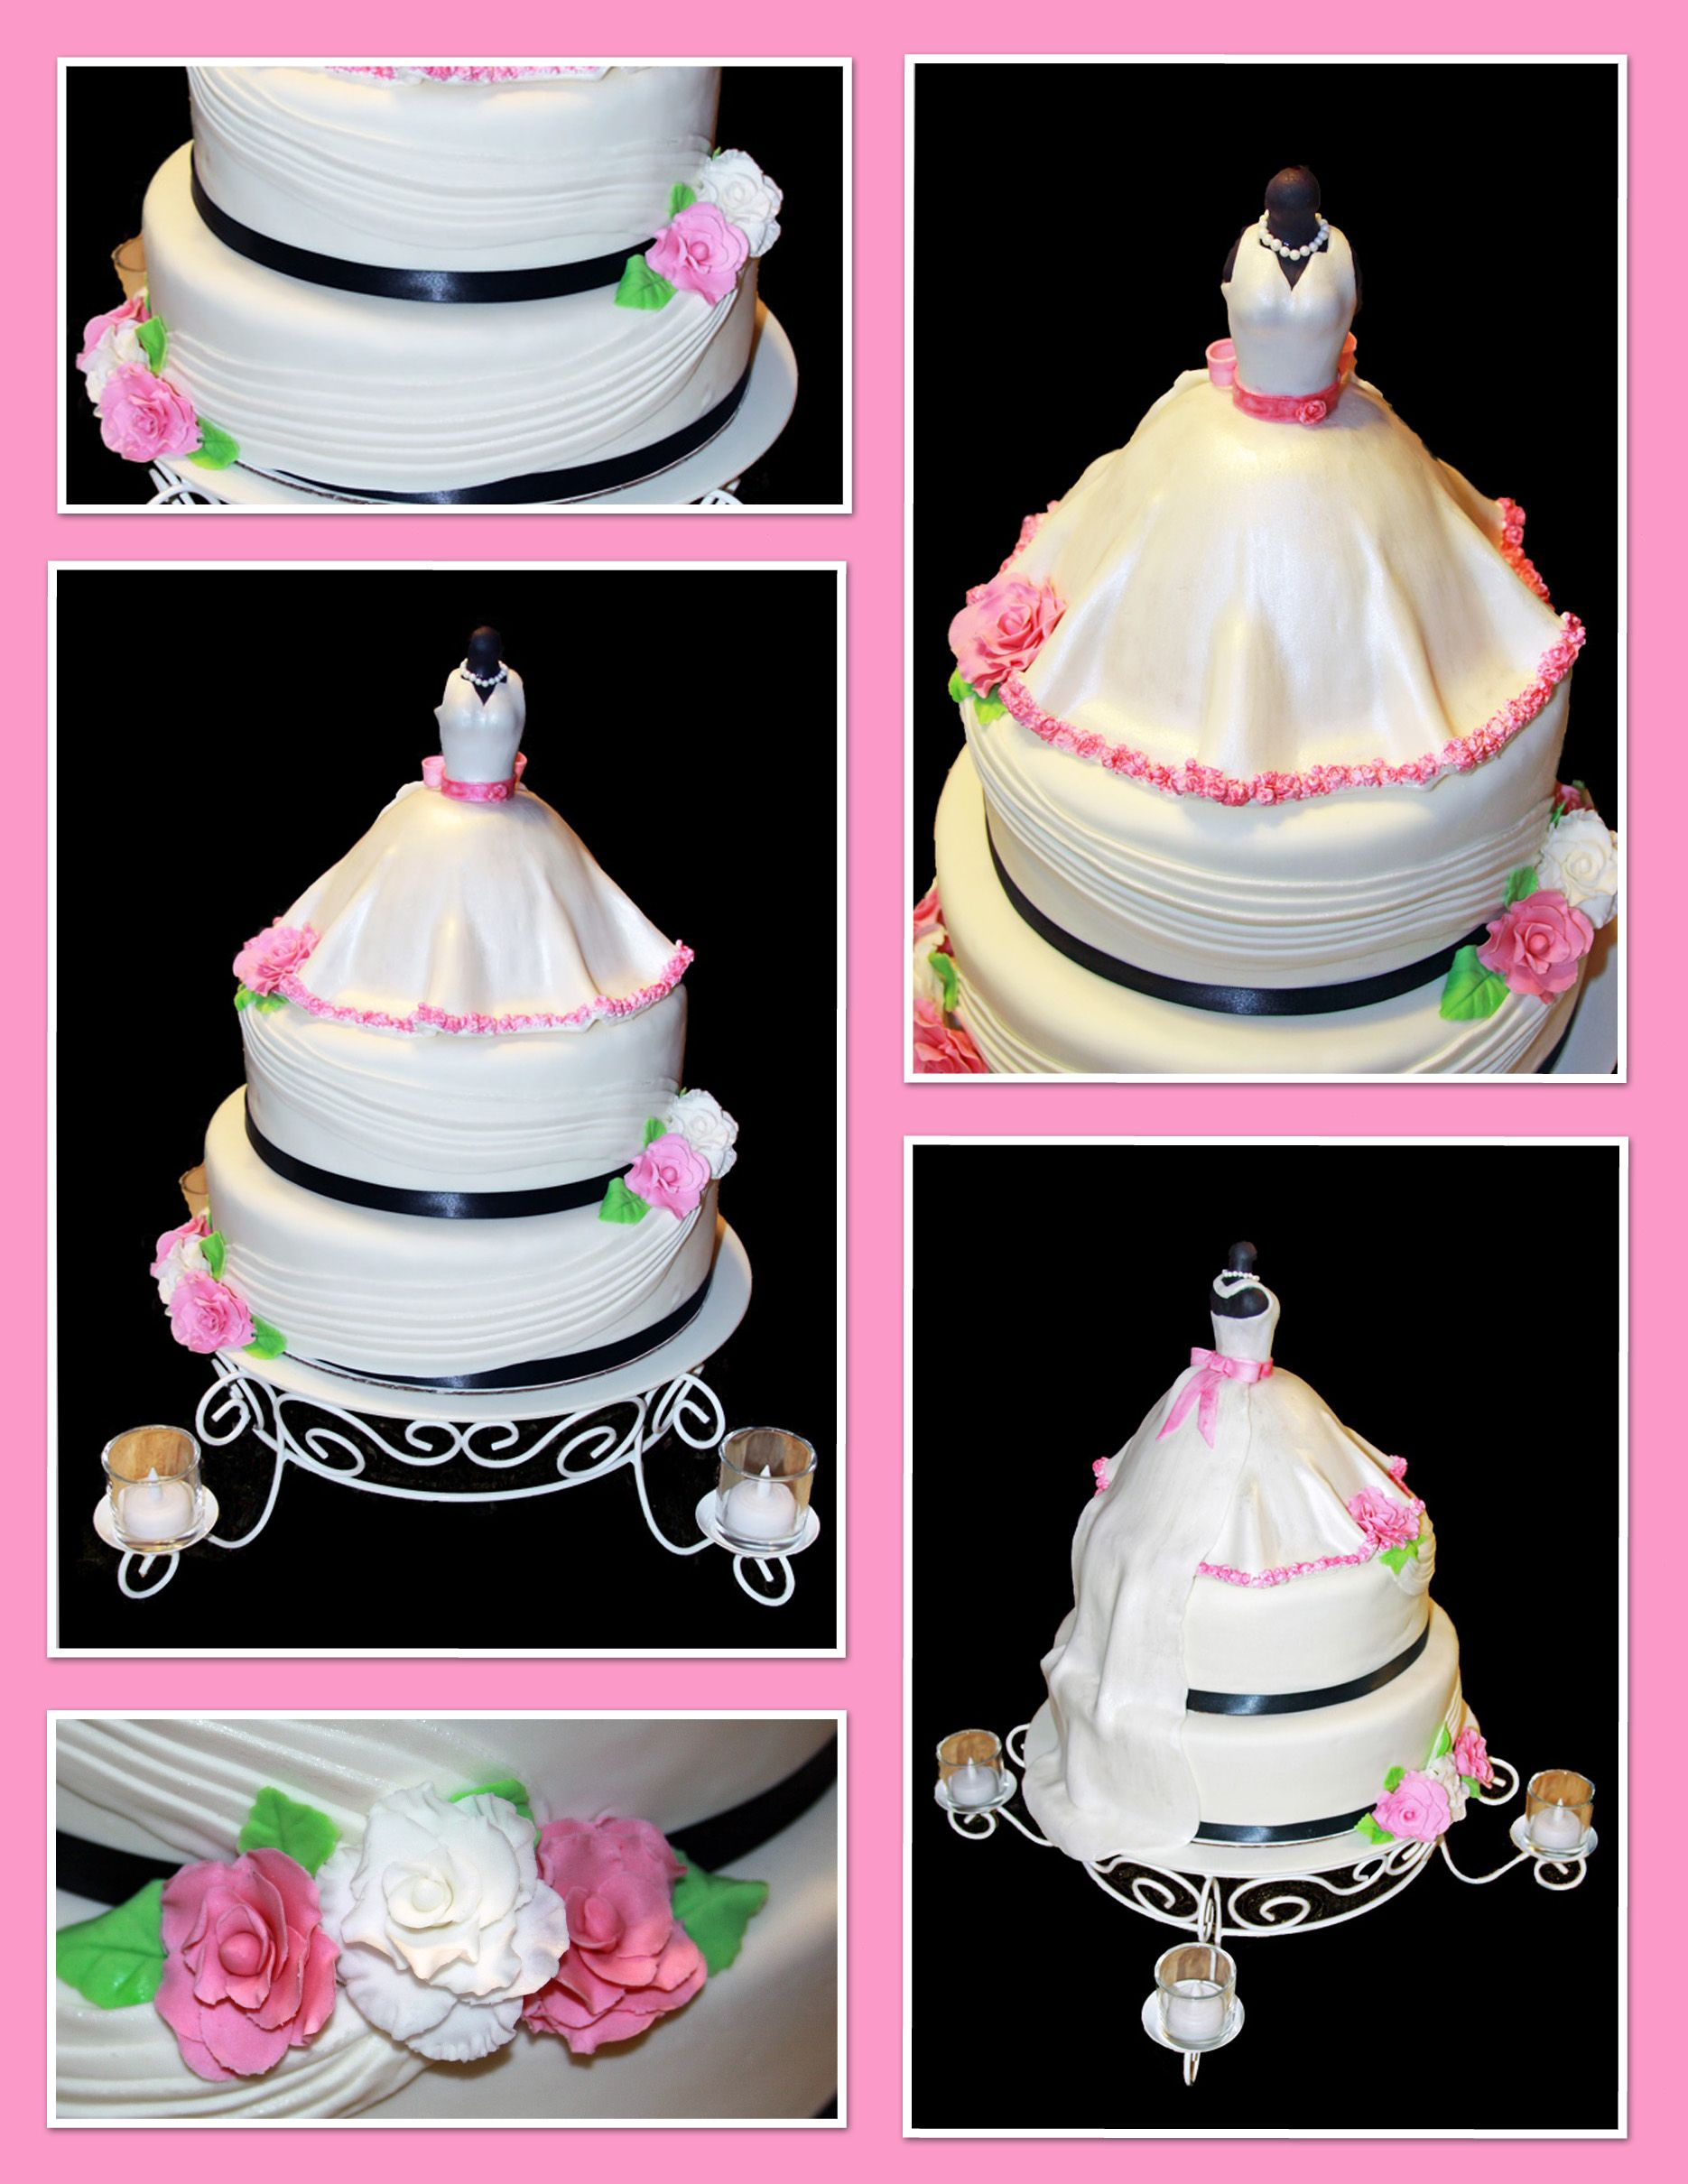 Wedding gown bridal shower cake sweet celebrations by